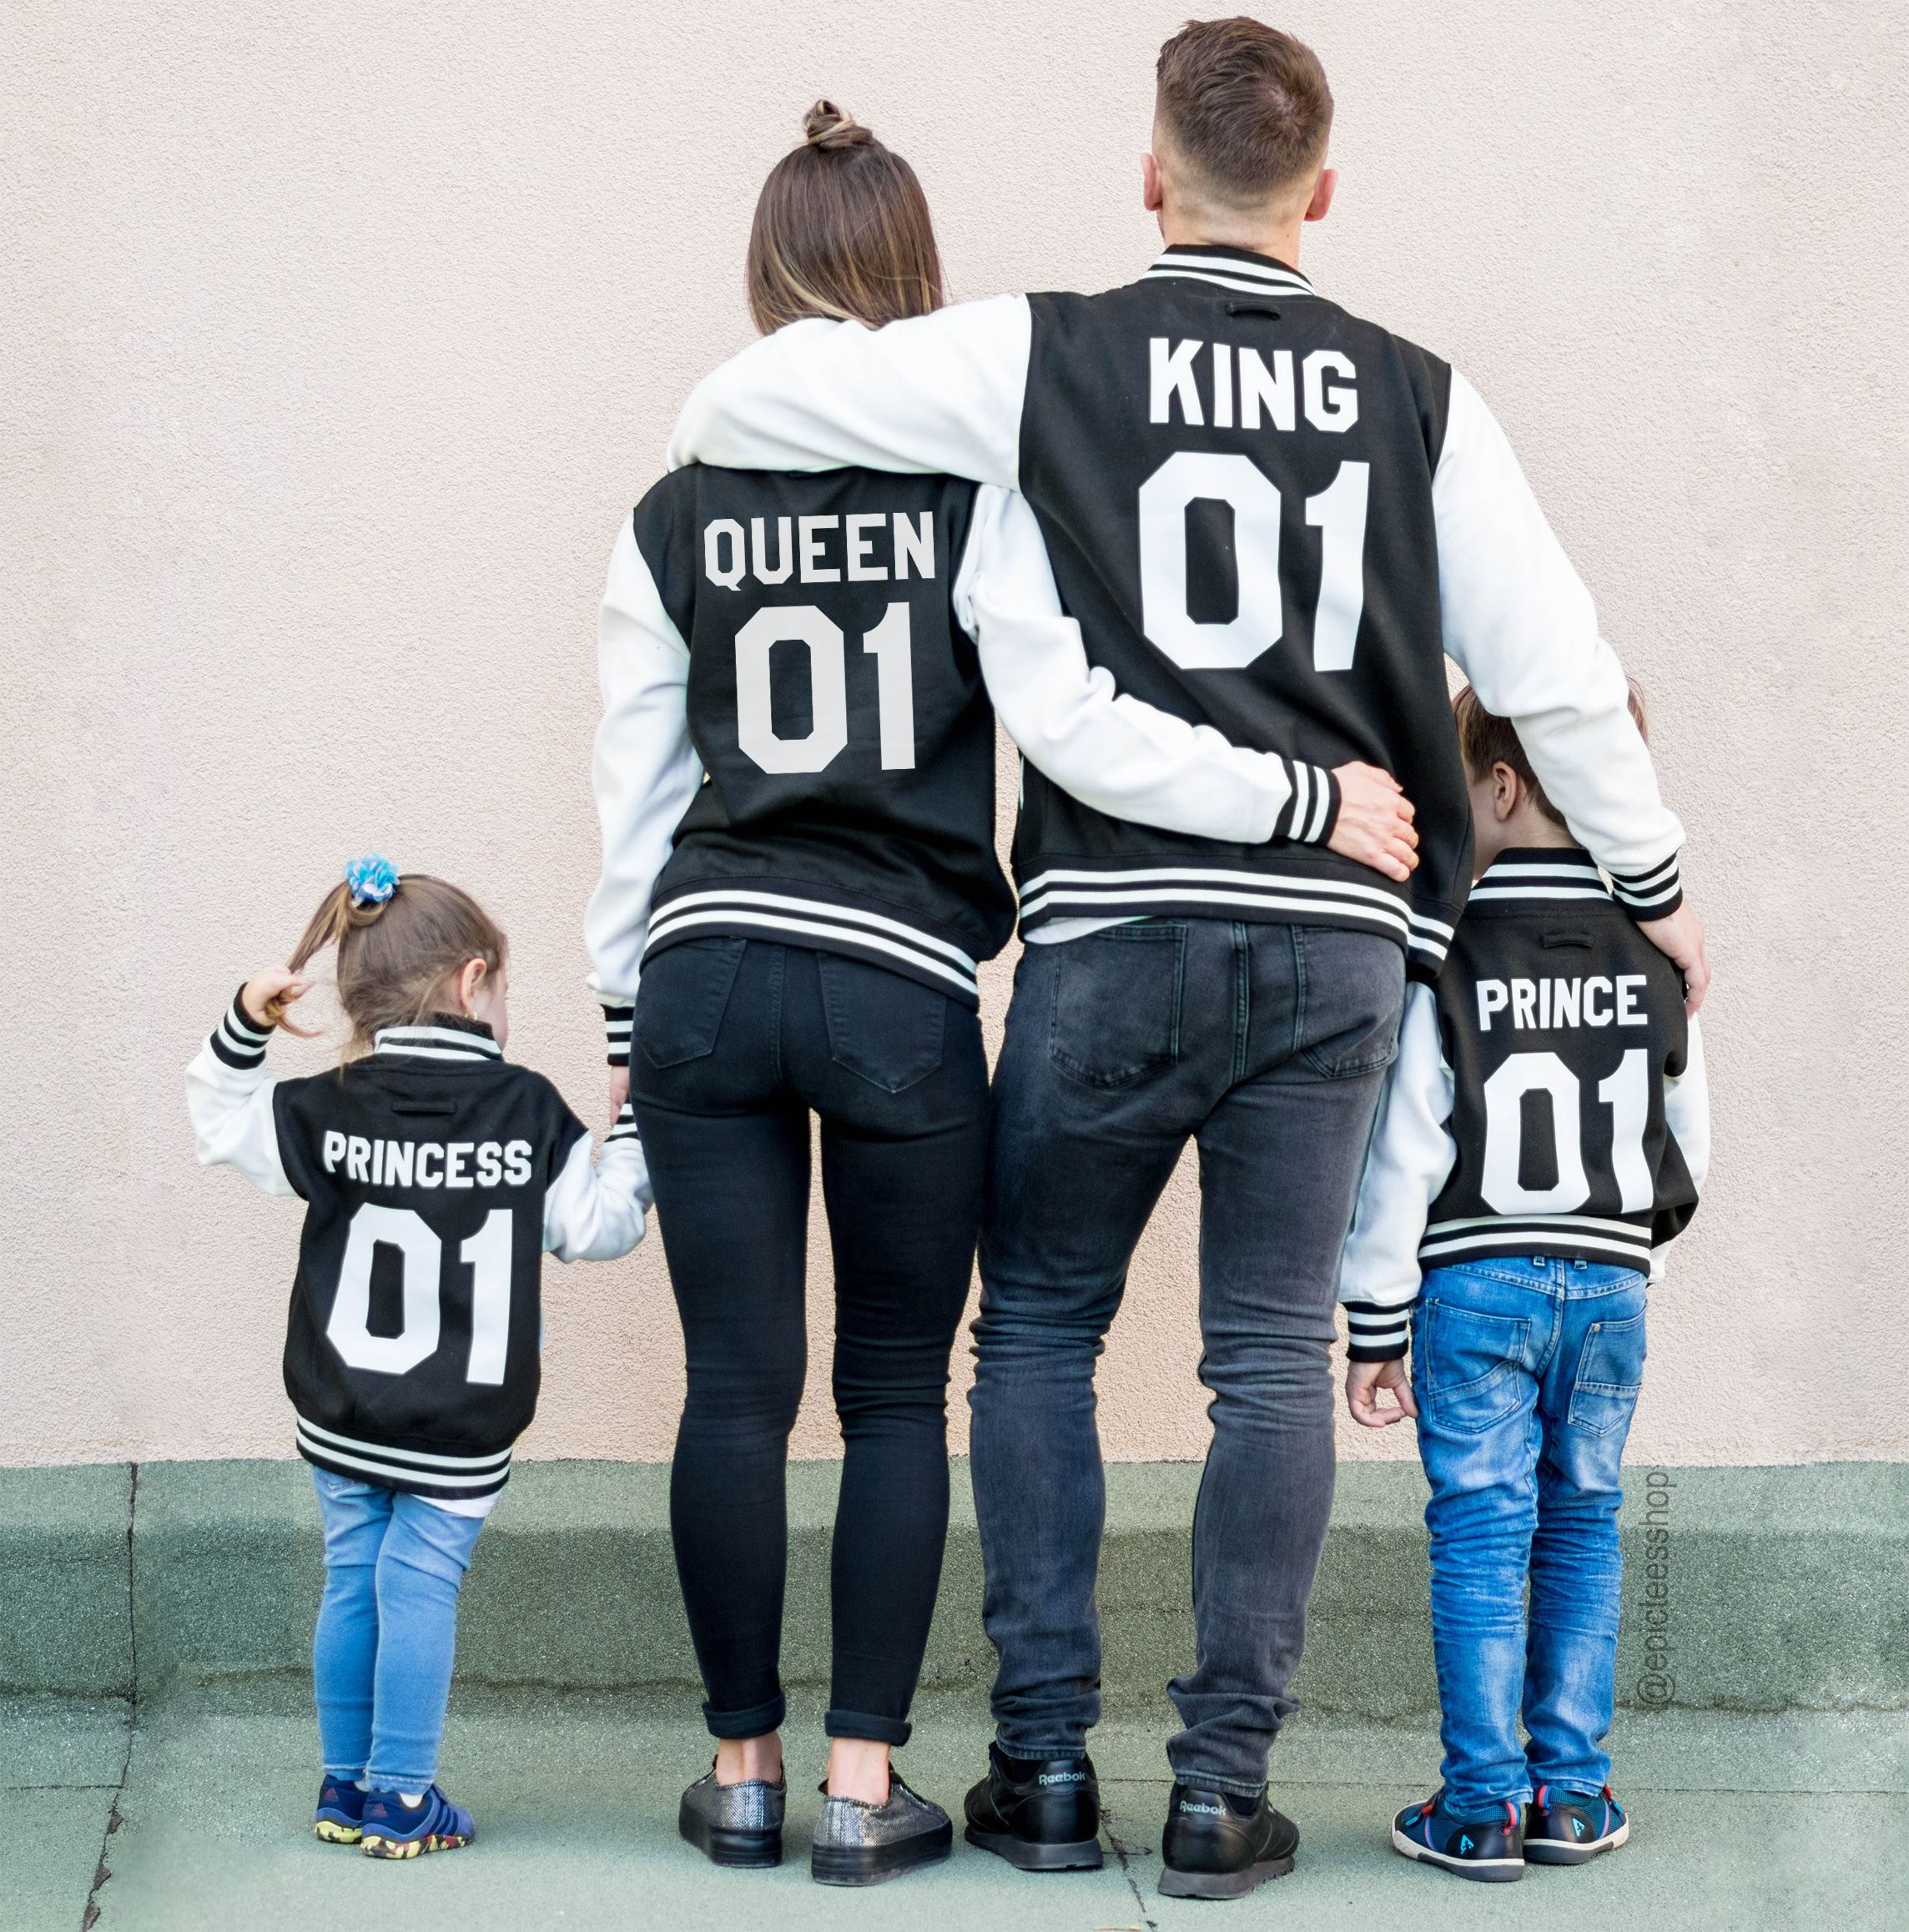 Family Varsity Jackets, King 01, Queen 01, Prince 01 ...